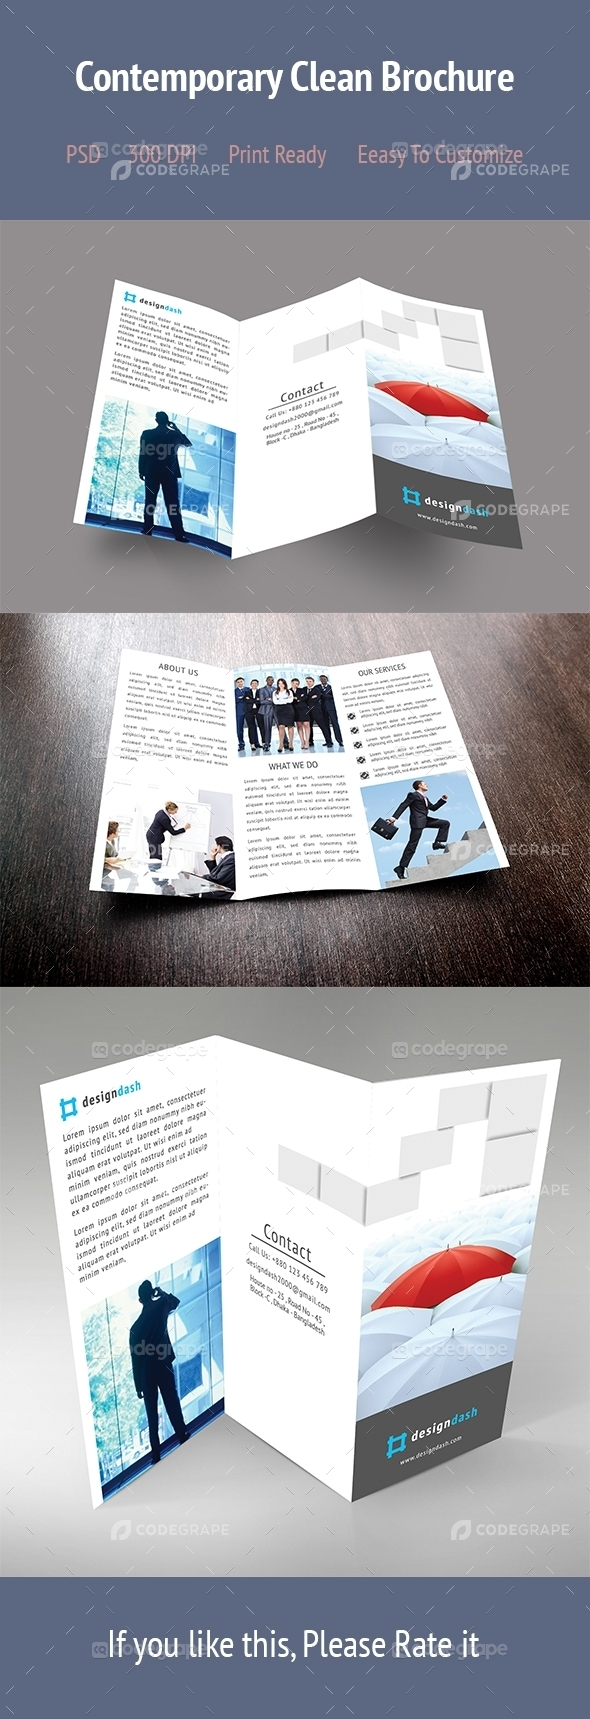 Contemporary Clean Brochure